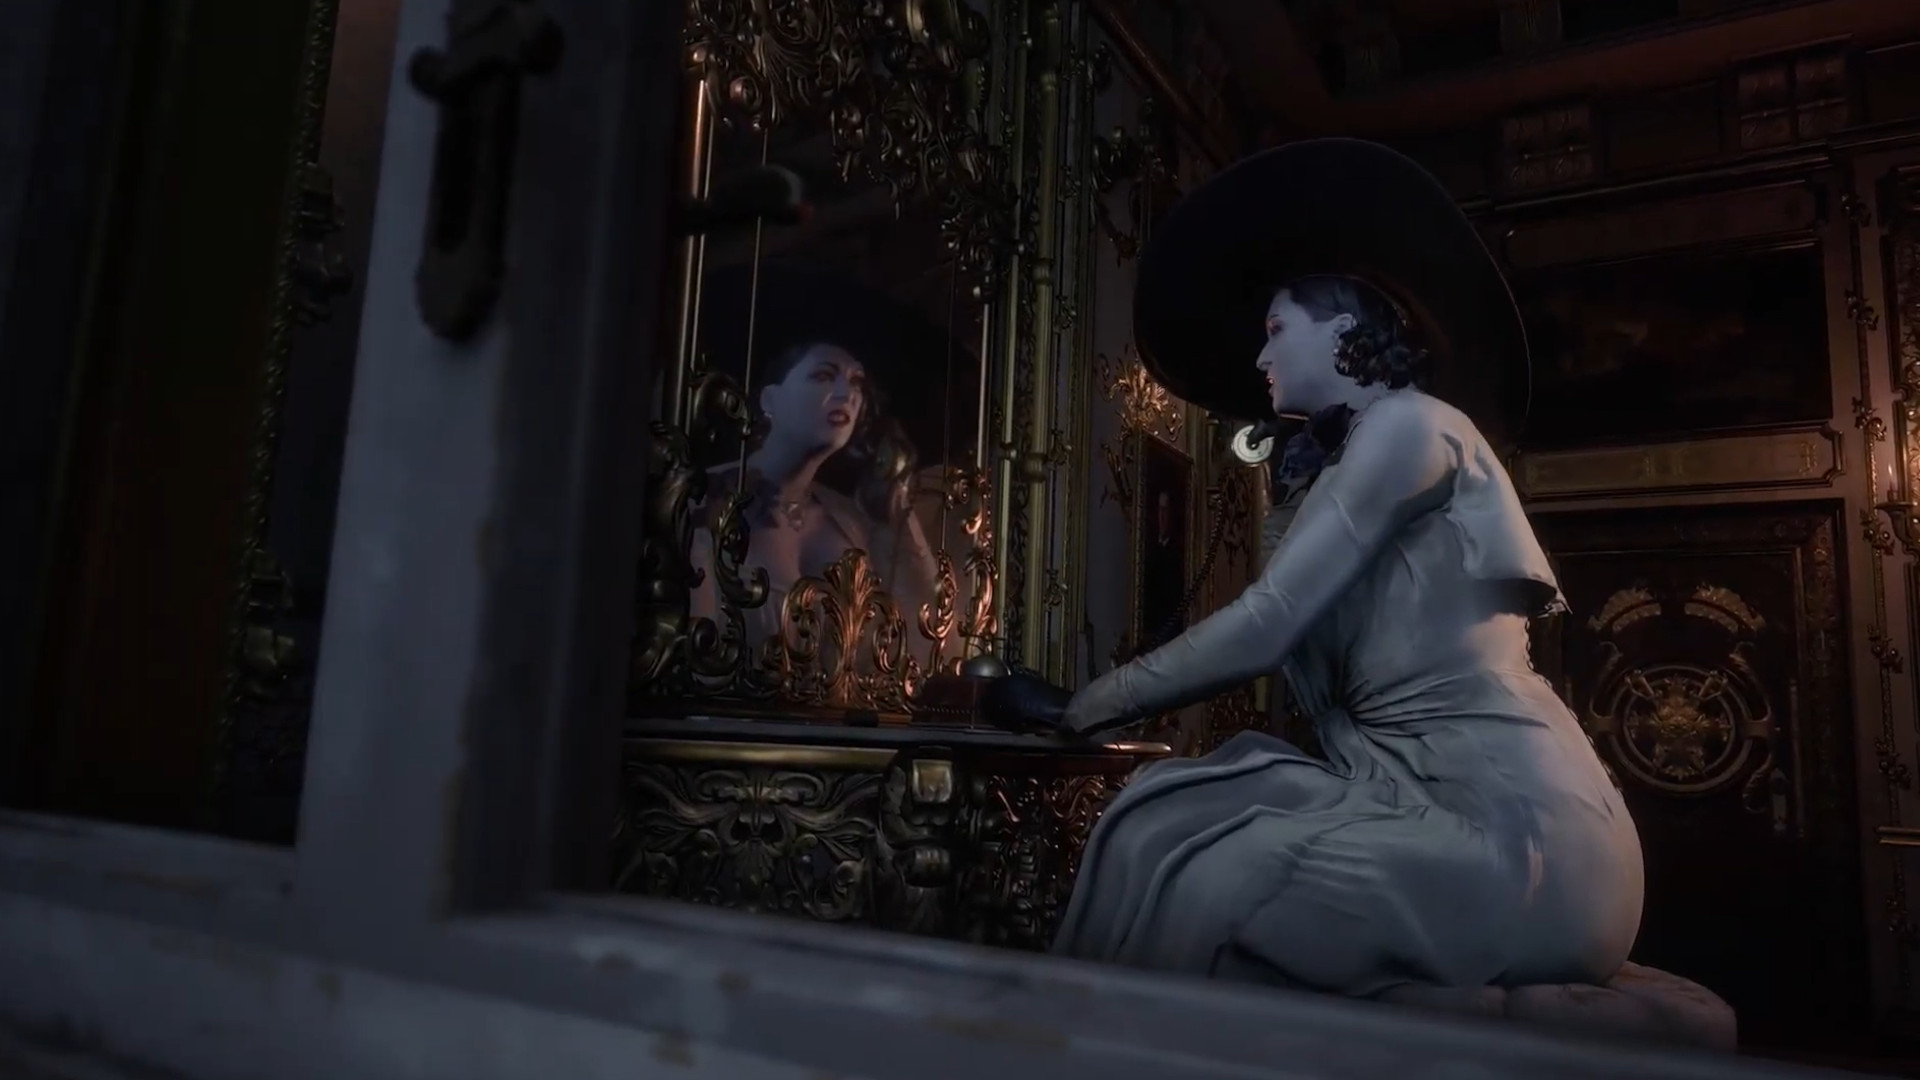 RE8's Lady Dimitrescu is based on a serial killer, a Japanese myth, and Morticia Addams